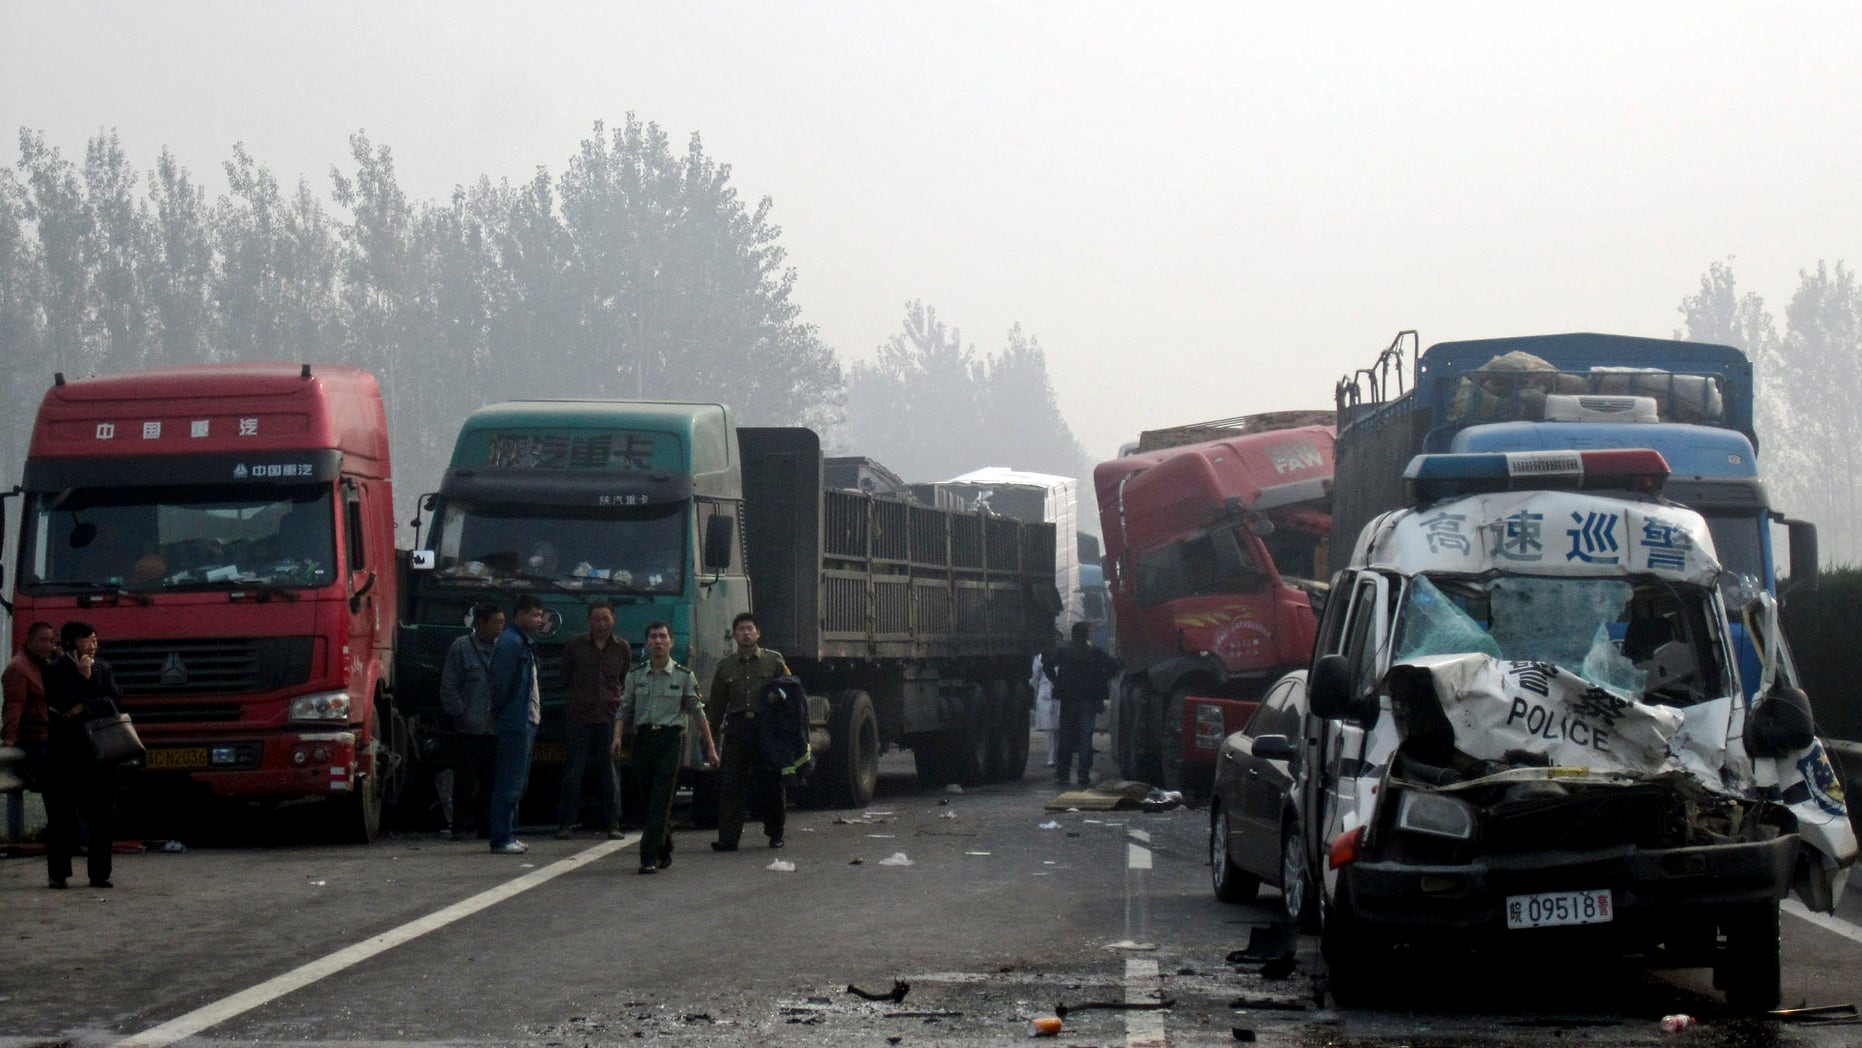 Oct. 7, 2011: People look at the damaged vehicles piled up on a highway road in Huaibei in central China's Anhui province. Three major road accidents in China killed at least 56 people on the last day of a weeklong holiday, including 35 people who died after a bus collided with a car on a northern expressway, state media reported Saturday.